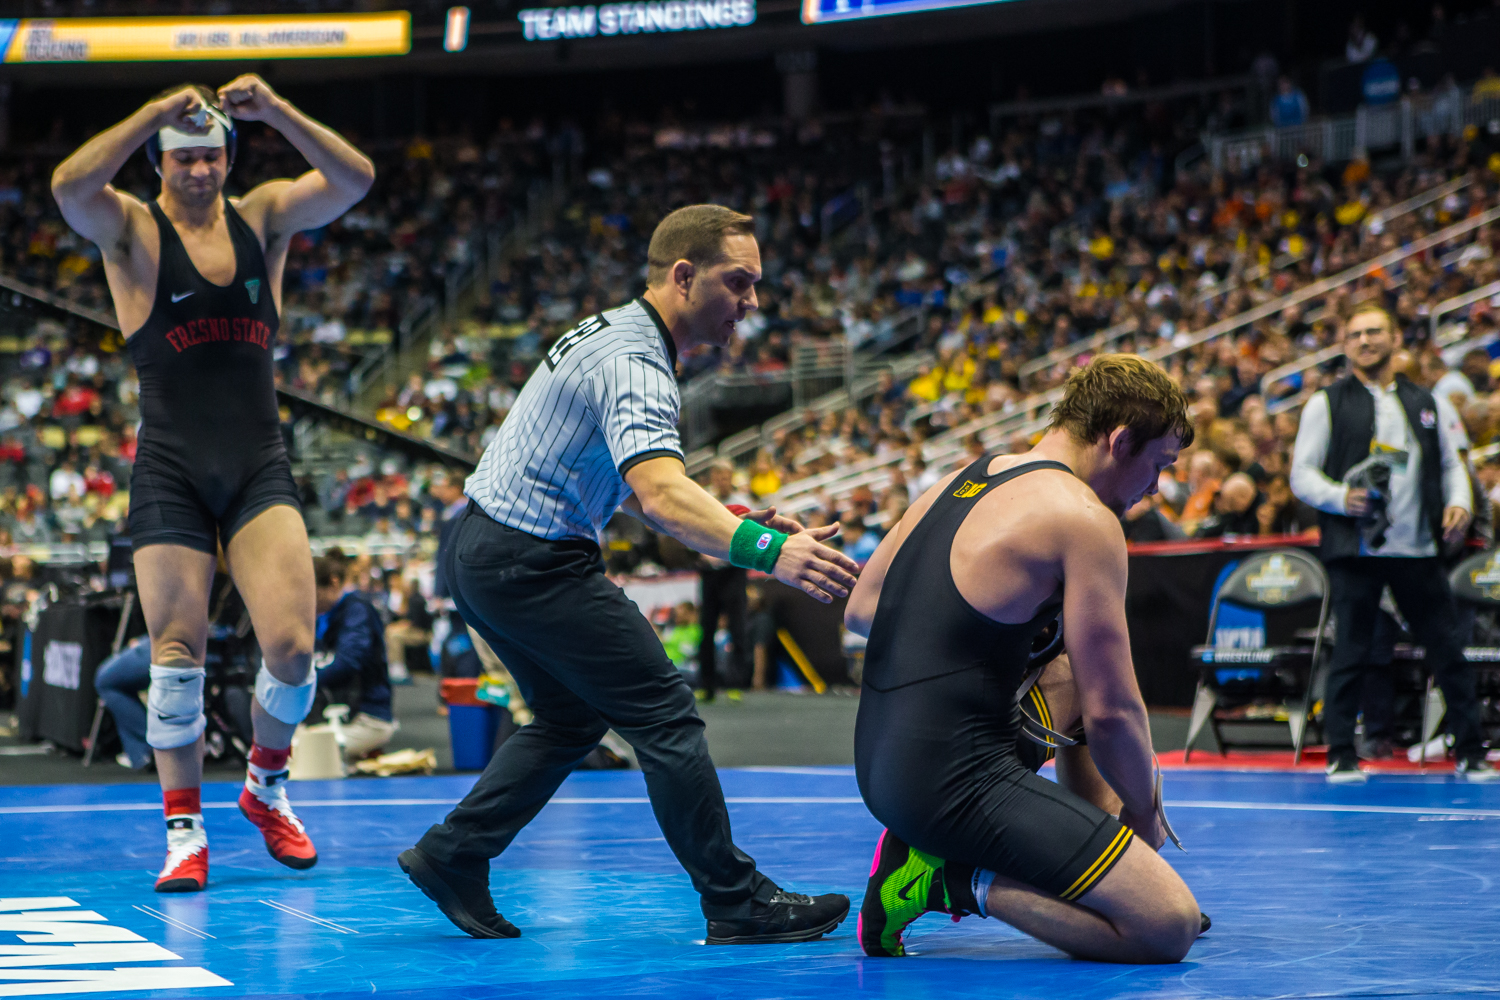 Iowa%E2%80%99s+197-pound+Jacob+Warner+is+defeated+by+Fresno+State%E2%80%99s+Josh+Hokit+during+the+fourth+session+of+the+2019+NCAA+D1+Wrestling+Championships+at+PPG+Paints+Arena+in+Pittsburgh%2C+PA+on+Friday%2C+March+22%2C+2019.+Hokit+won+by+decision%2C+5-4.